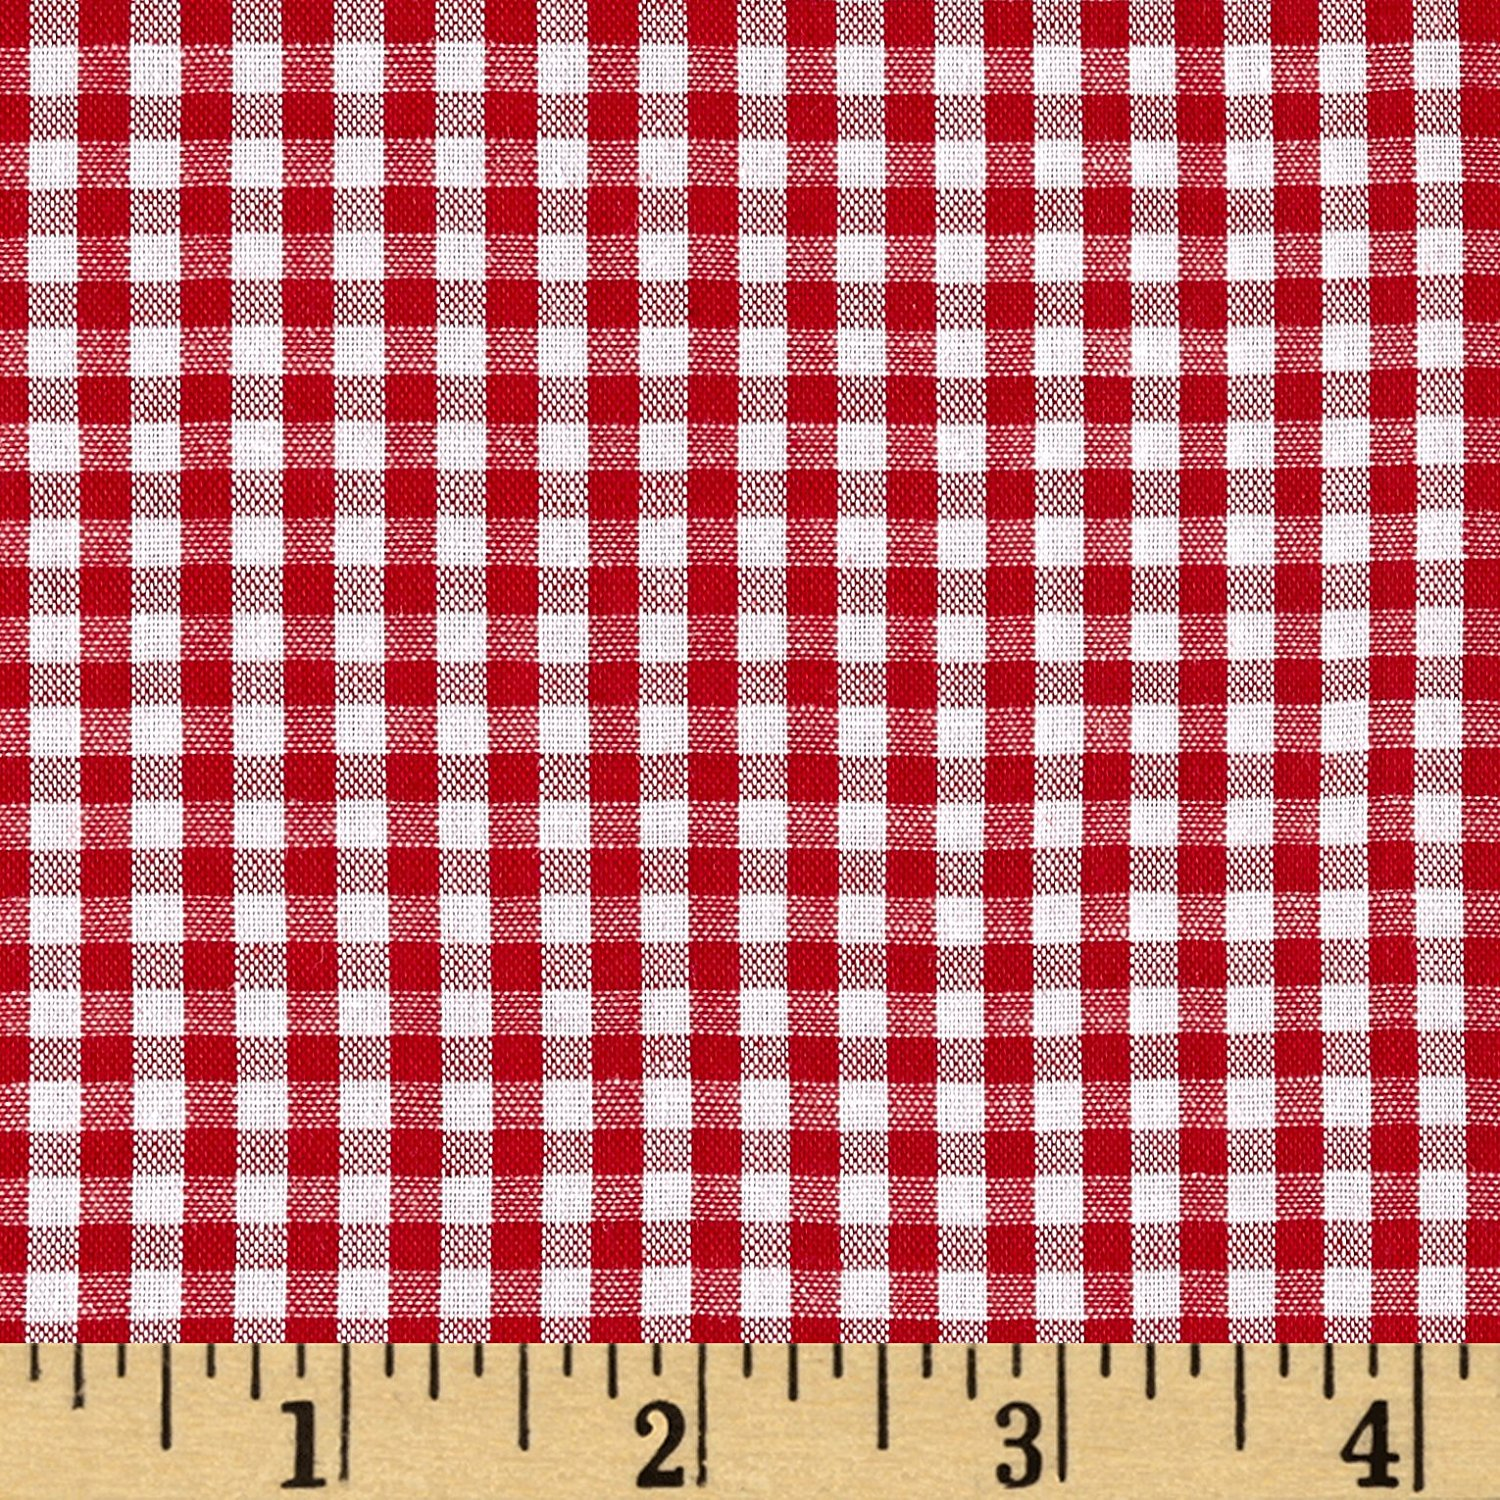 Wide Width 1/8in Gingham Check Red/White Fabric By The Yard, Gingham By Richland Textiles